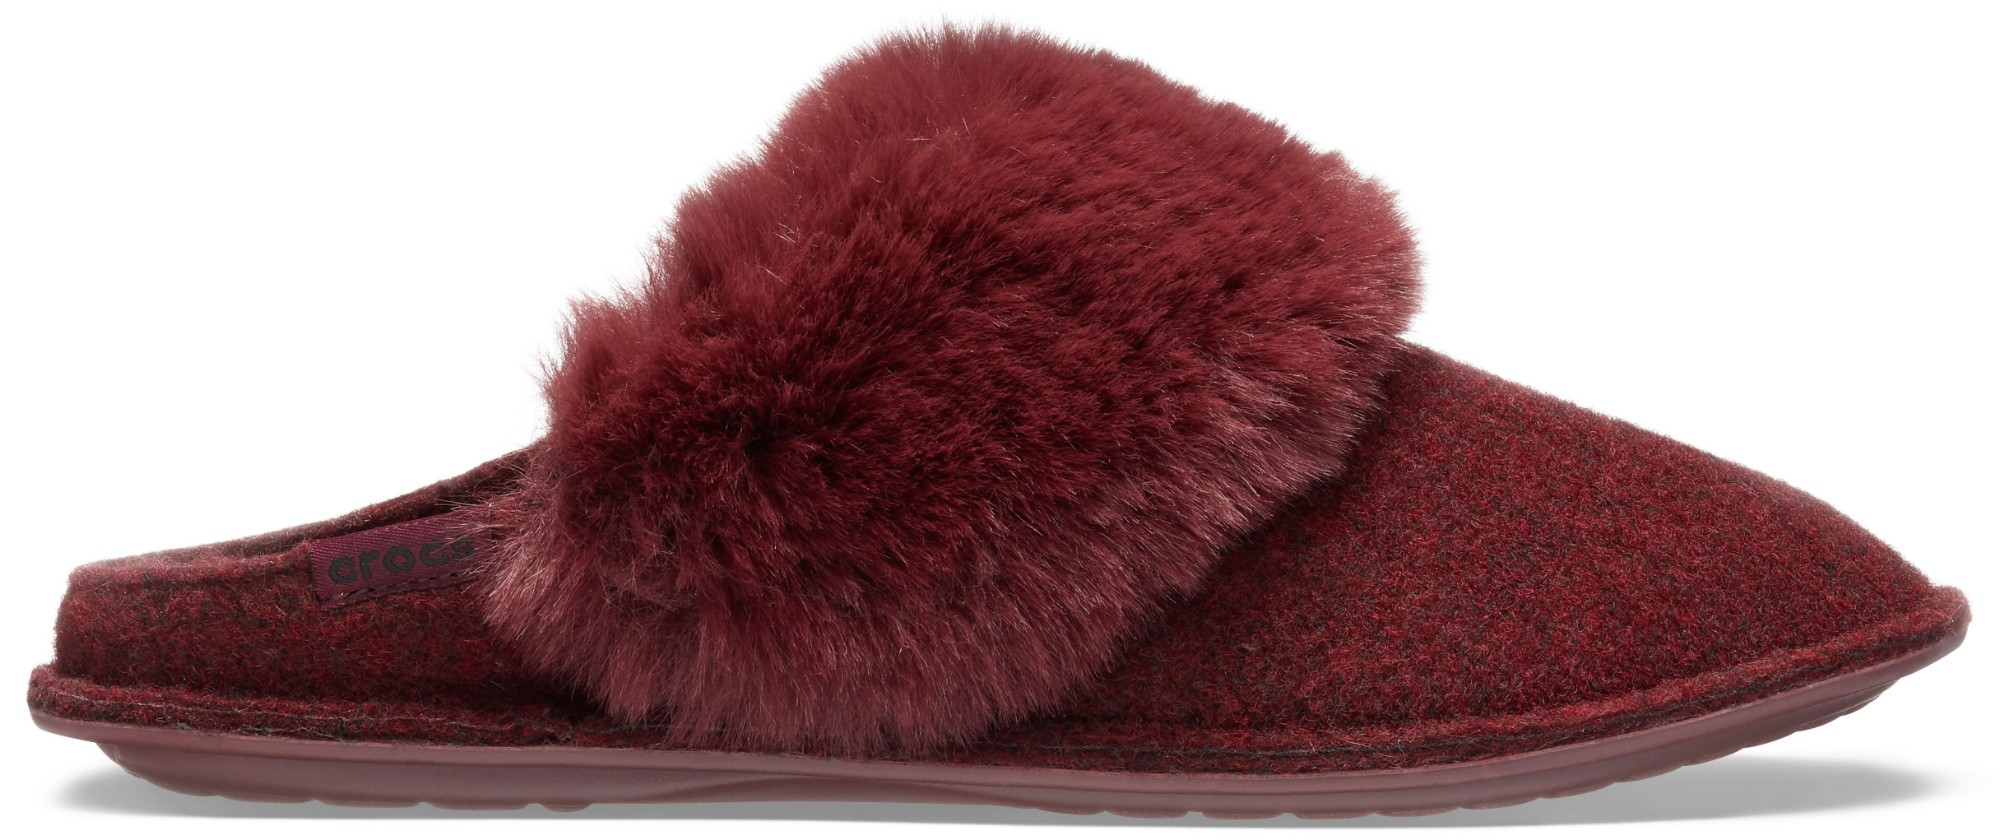 Crocs™ Classic Luxe Slipper Burgundy 39,5